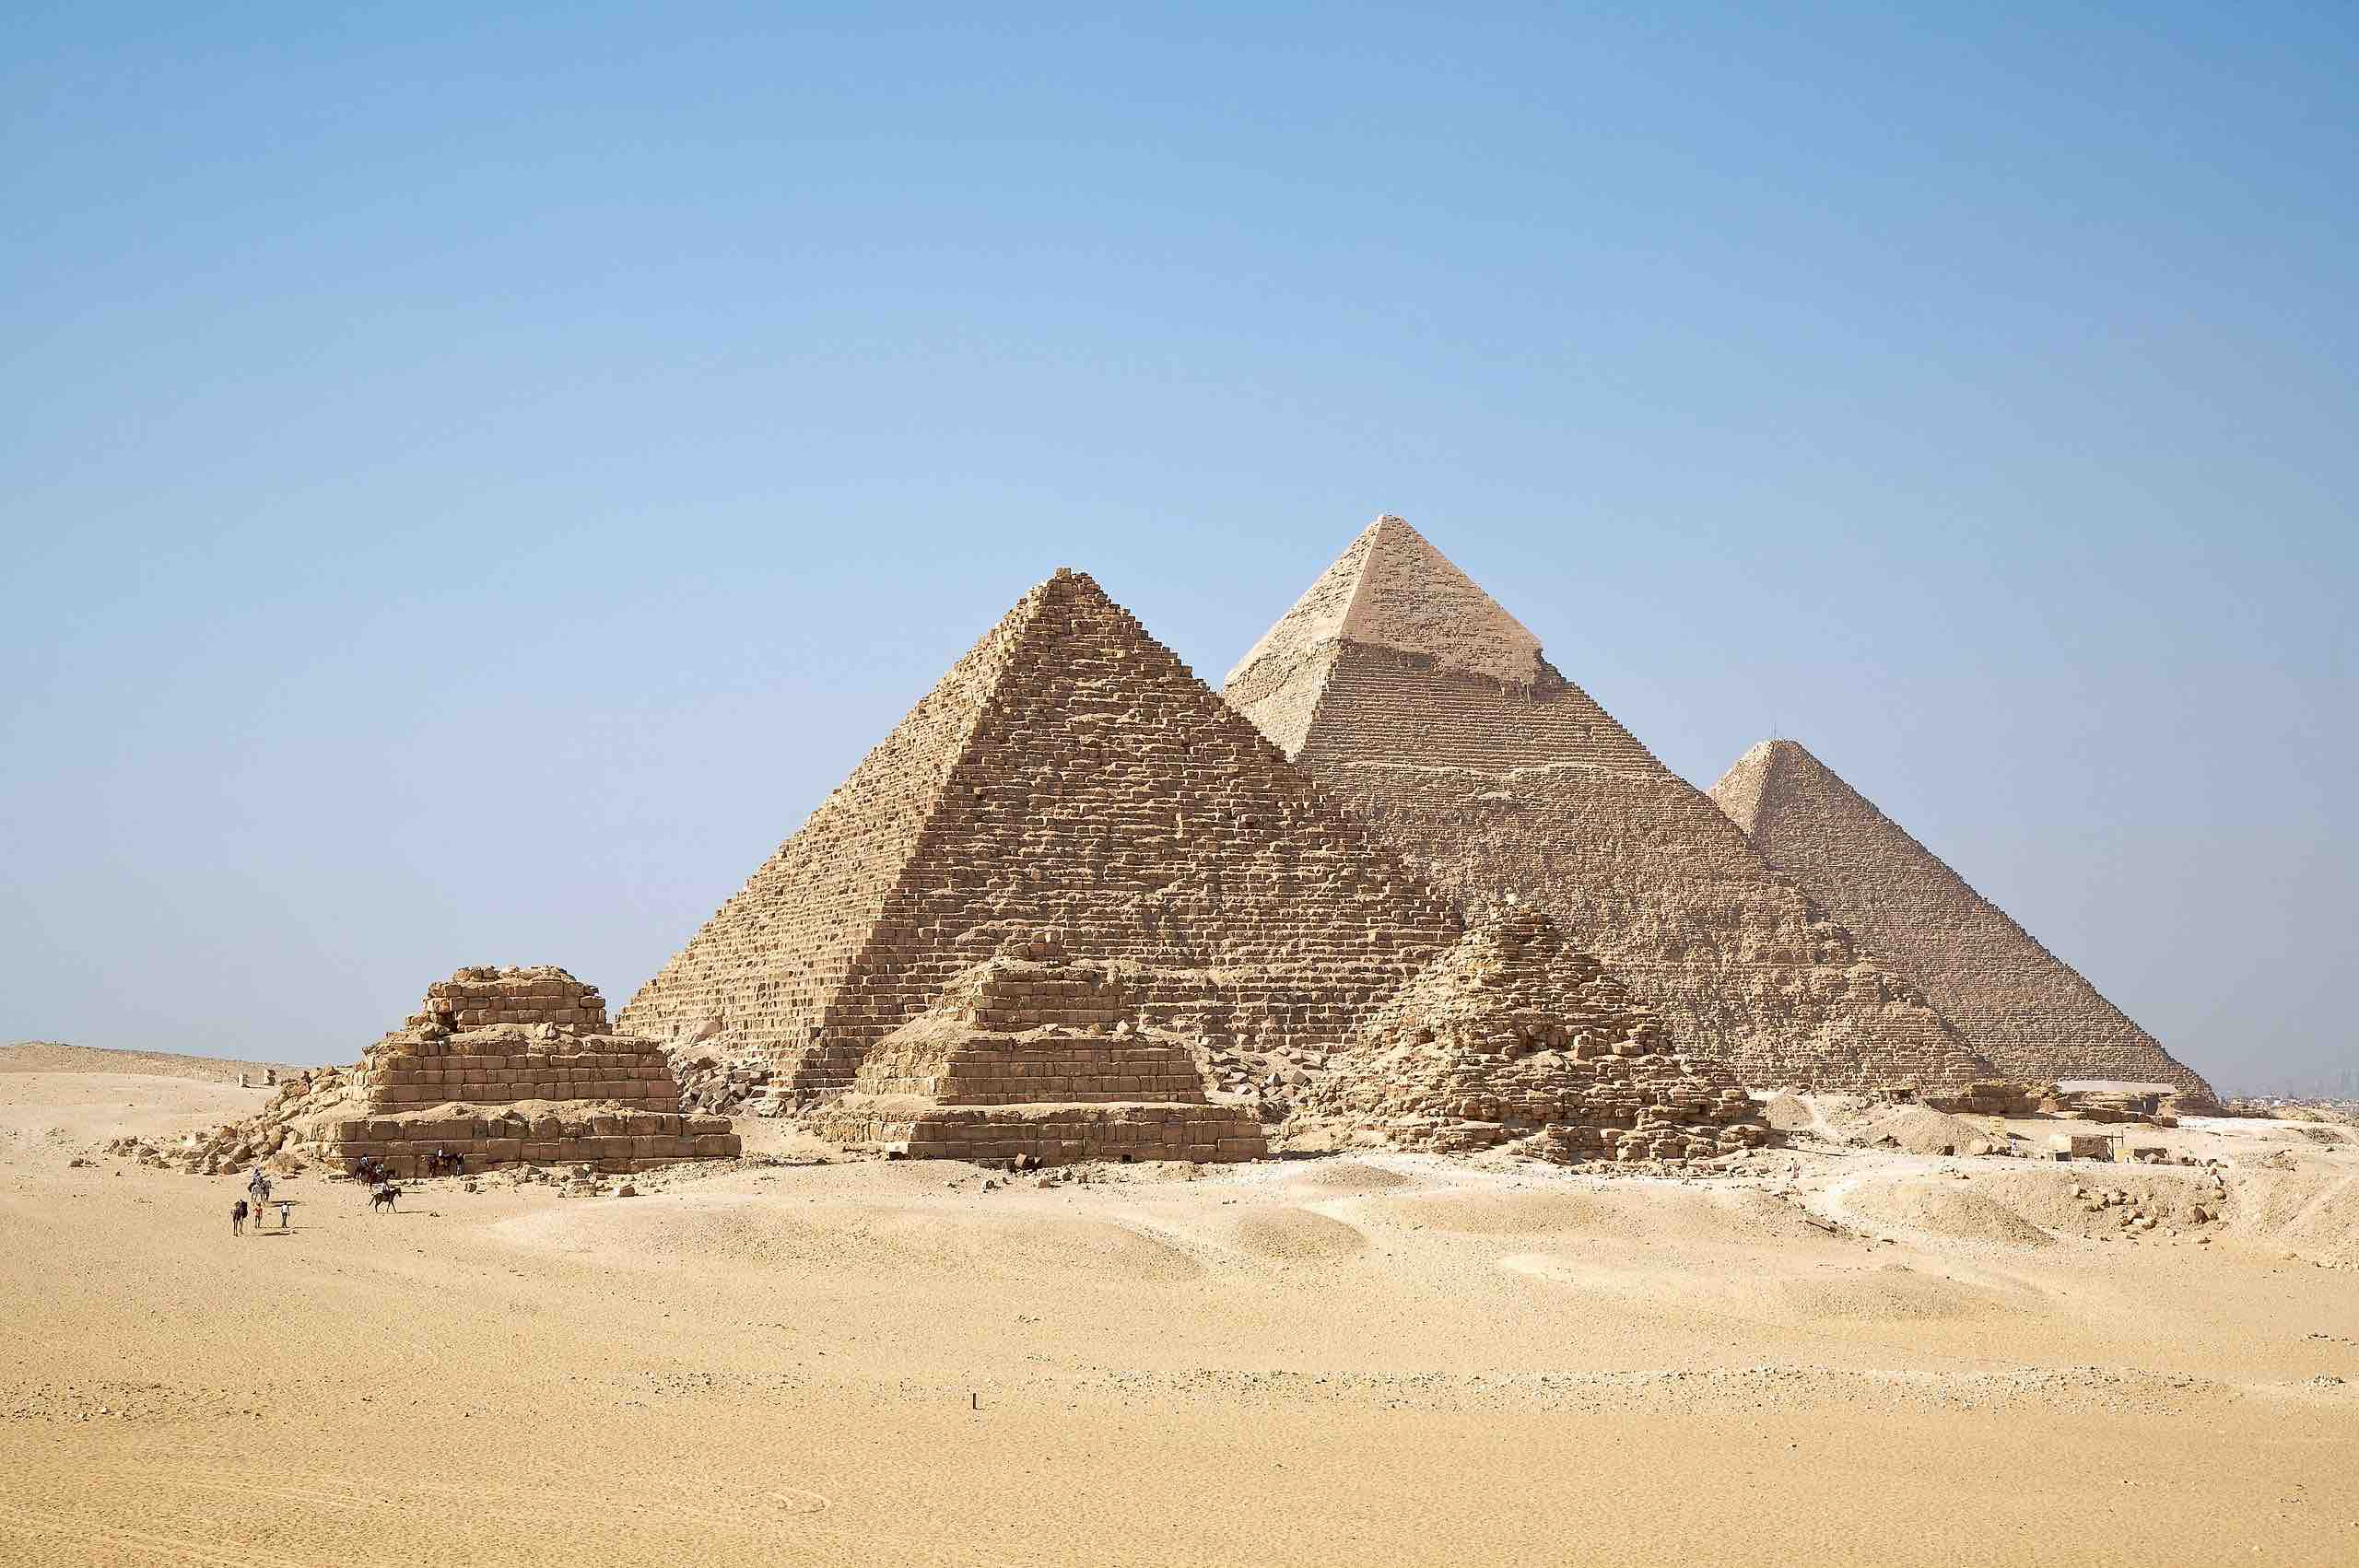 Pyramids_of_Giza. Africa Travel Guide. Egypt, North Africa